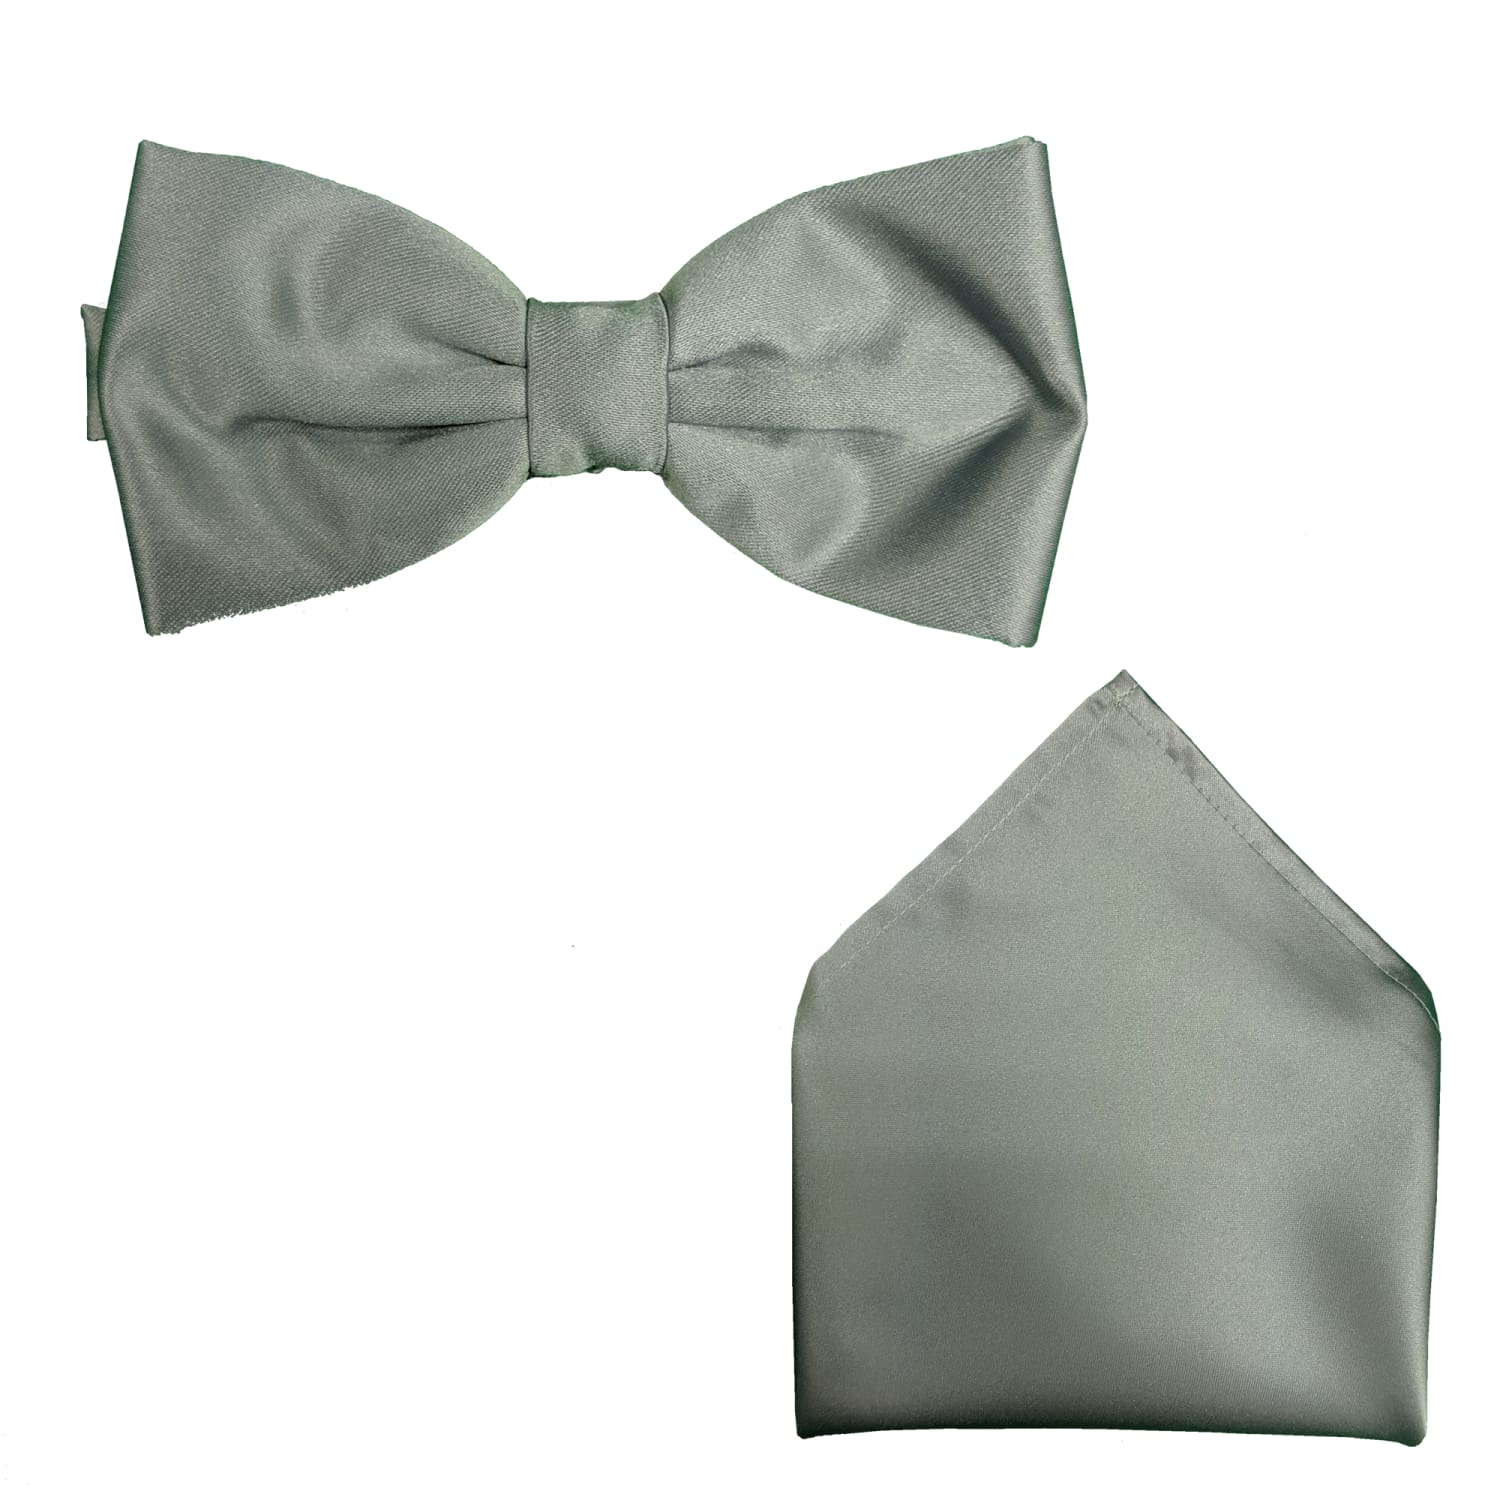 Folkespeare Bow Tie & Pocket Square Set - BK0030 - Silver Grey 1